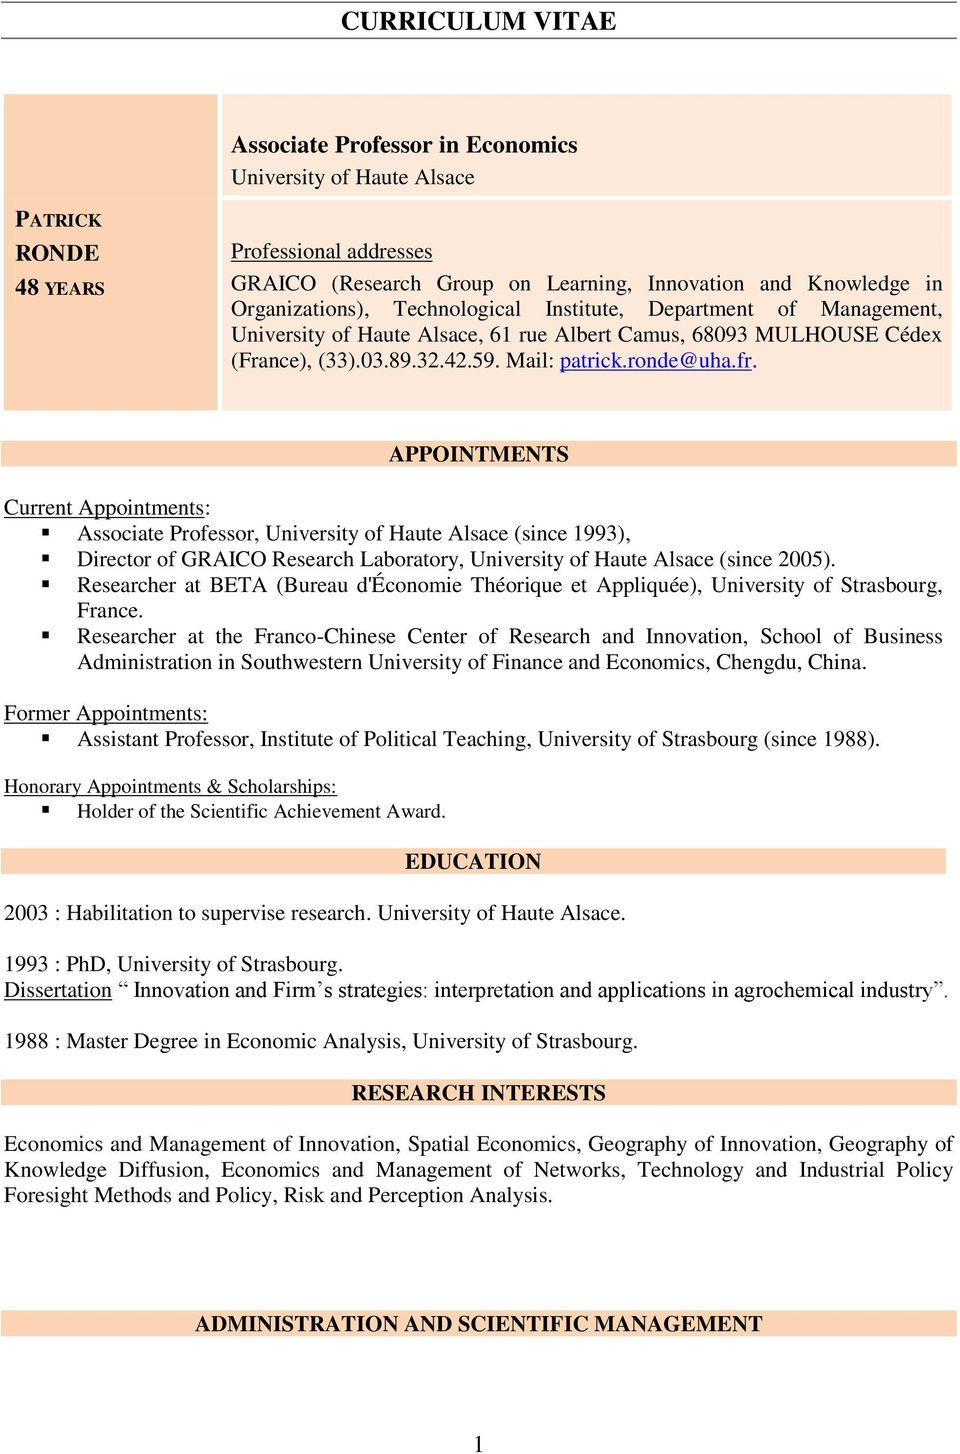 APPOINTMENTS Current Appointments: Associate Professor, University of Haute Alsace (since 1993), Director of GRAICO Research Laboratory, University of Haute Alsace (since 2005).